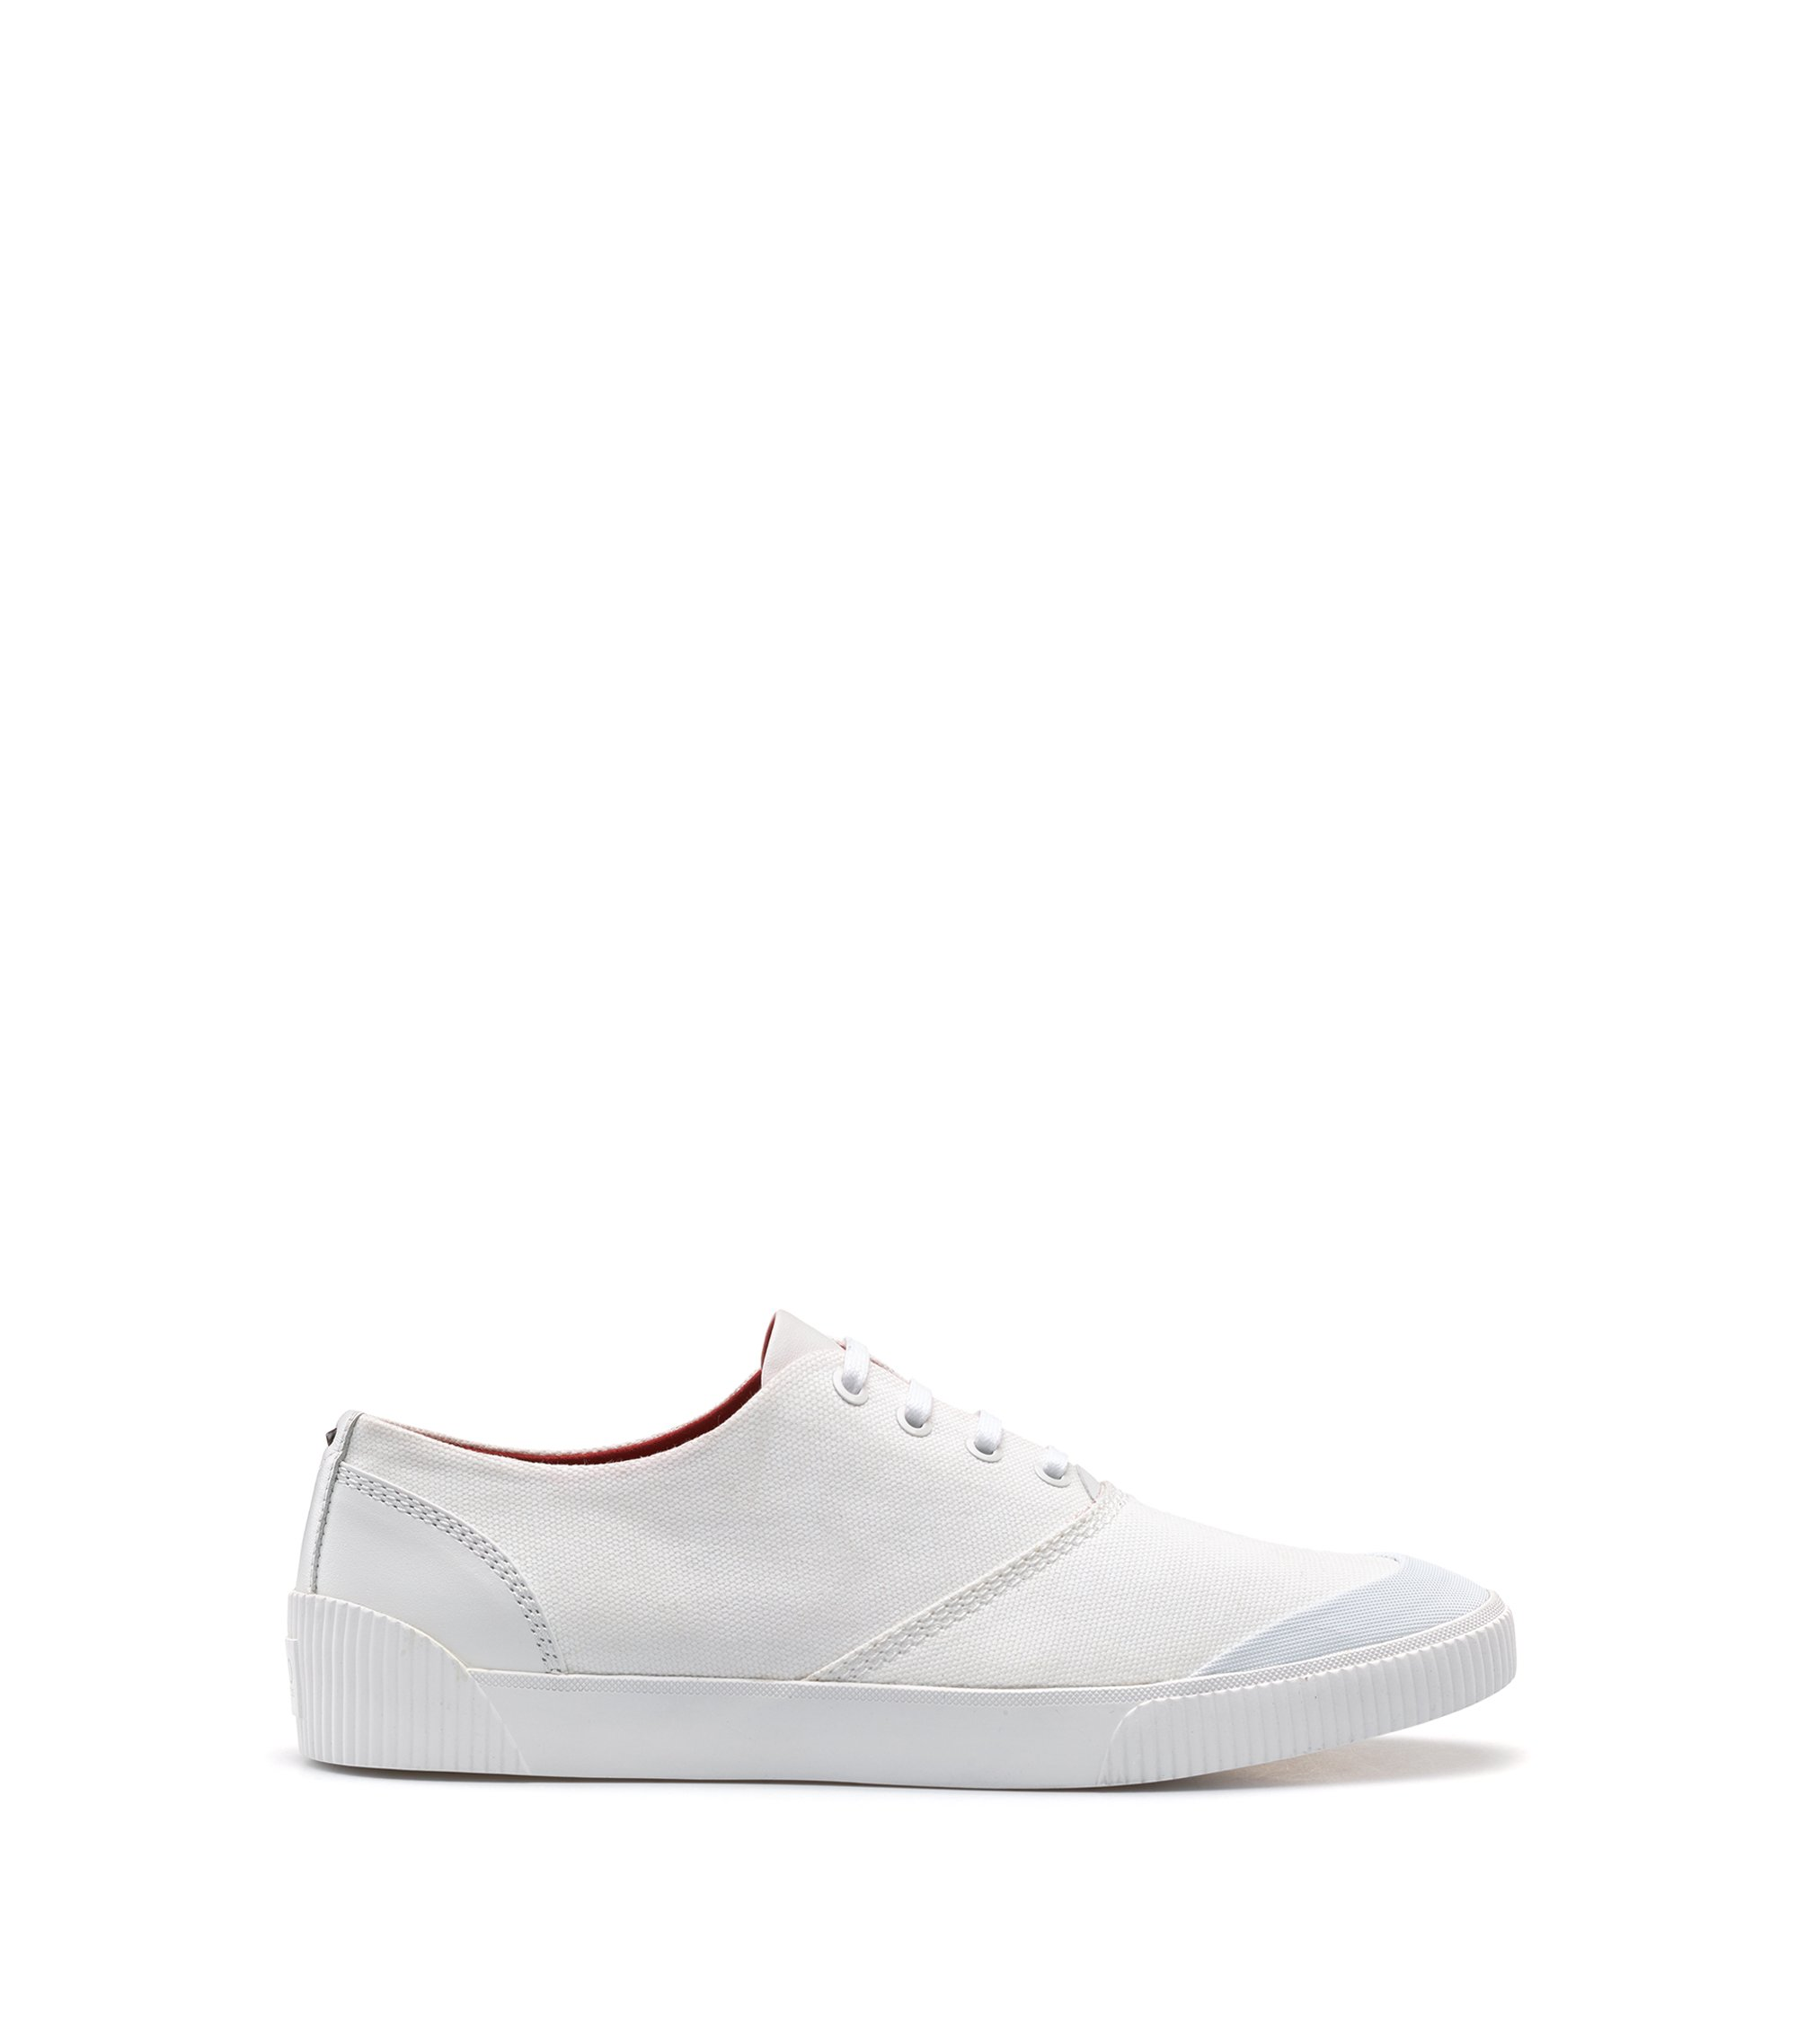 Lace-up tennis shoes in technical fabric, White